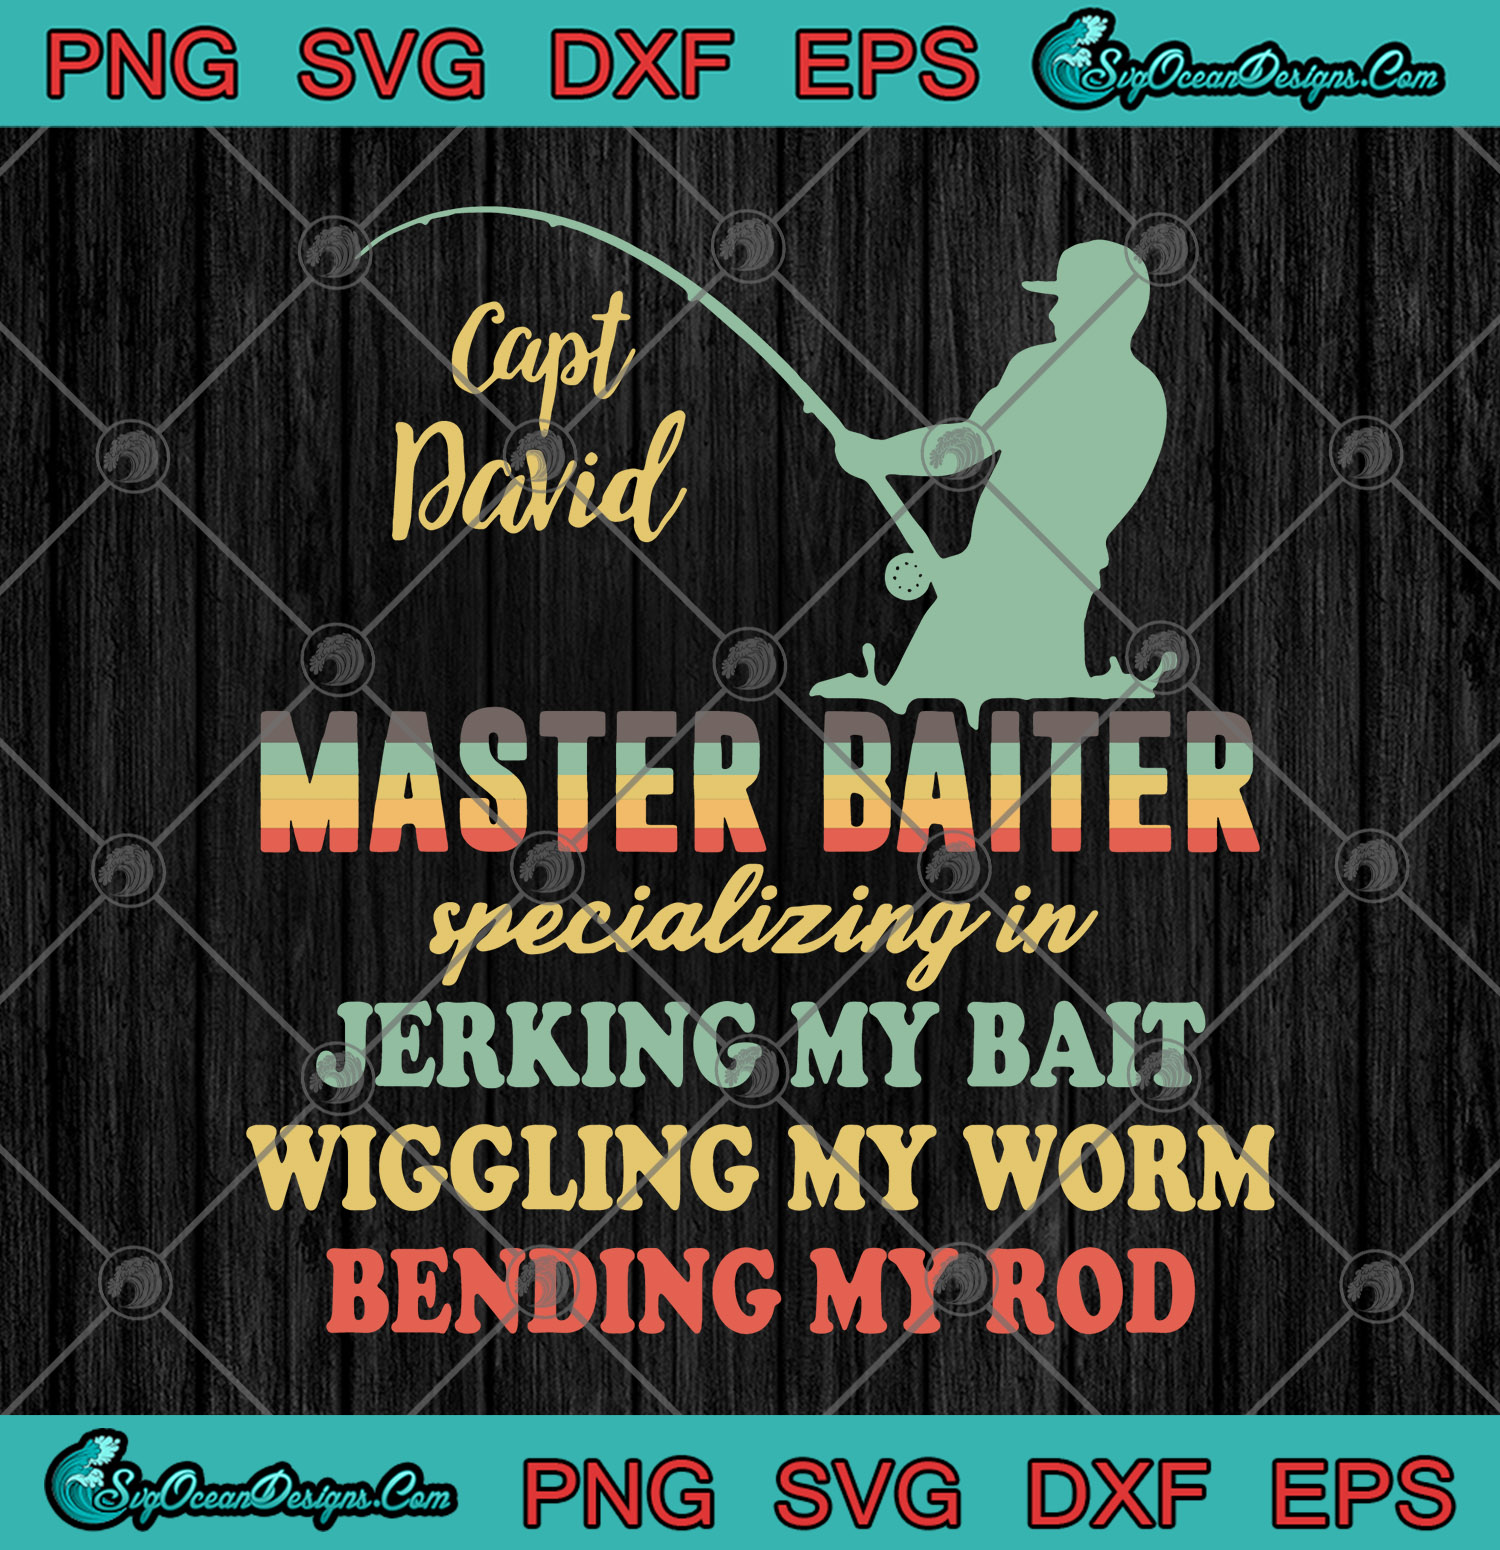 Download Capt David Master Baiter Specializing In Jerking My Bait Wiggling My Worm Bending My Rod Svg Png Cutting File Cricut Silhouette Art Svg Png Eps Dxf Cricut Silhouette Designs Digital Download